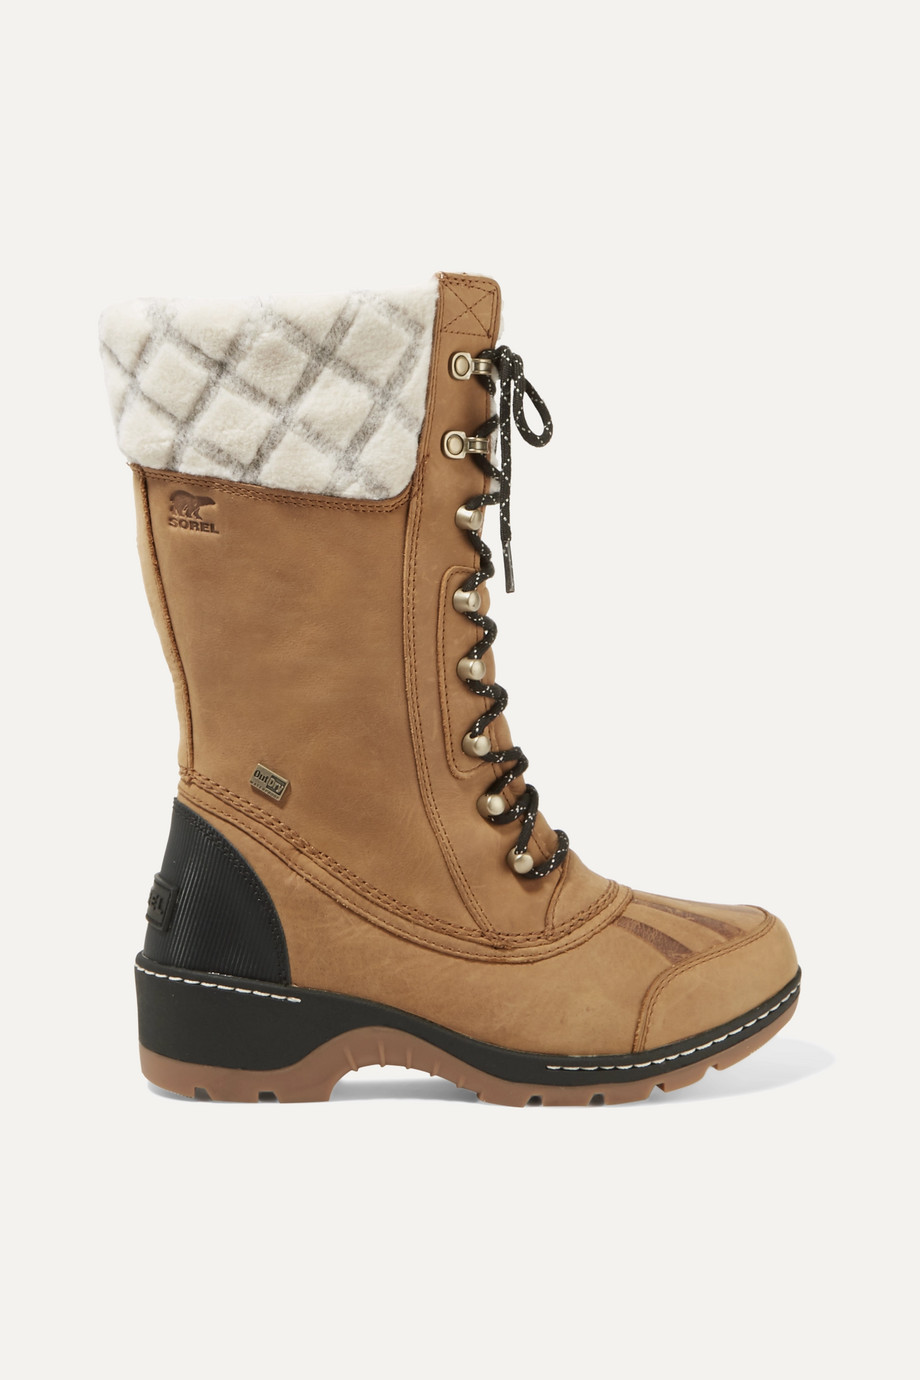 Sorel Whistler wool-trimmed waterproof leather boots